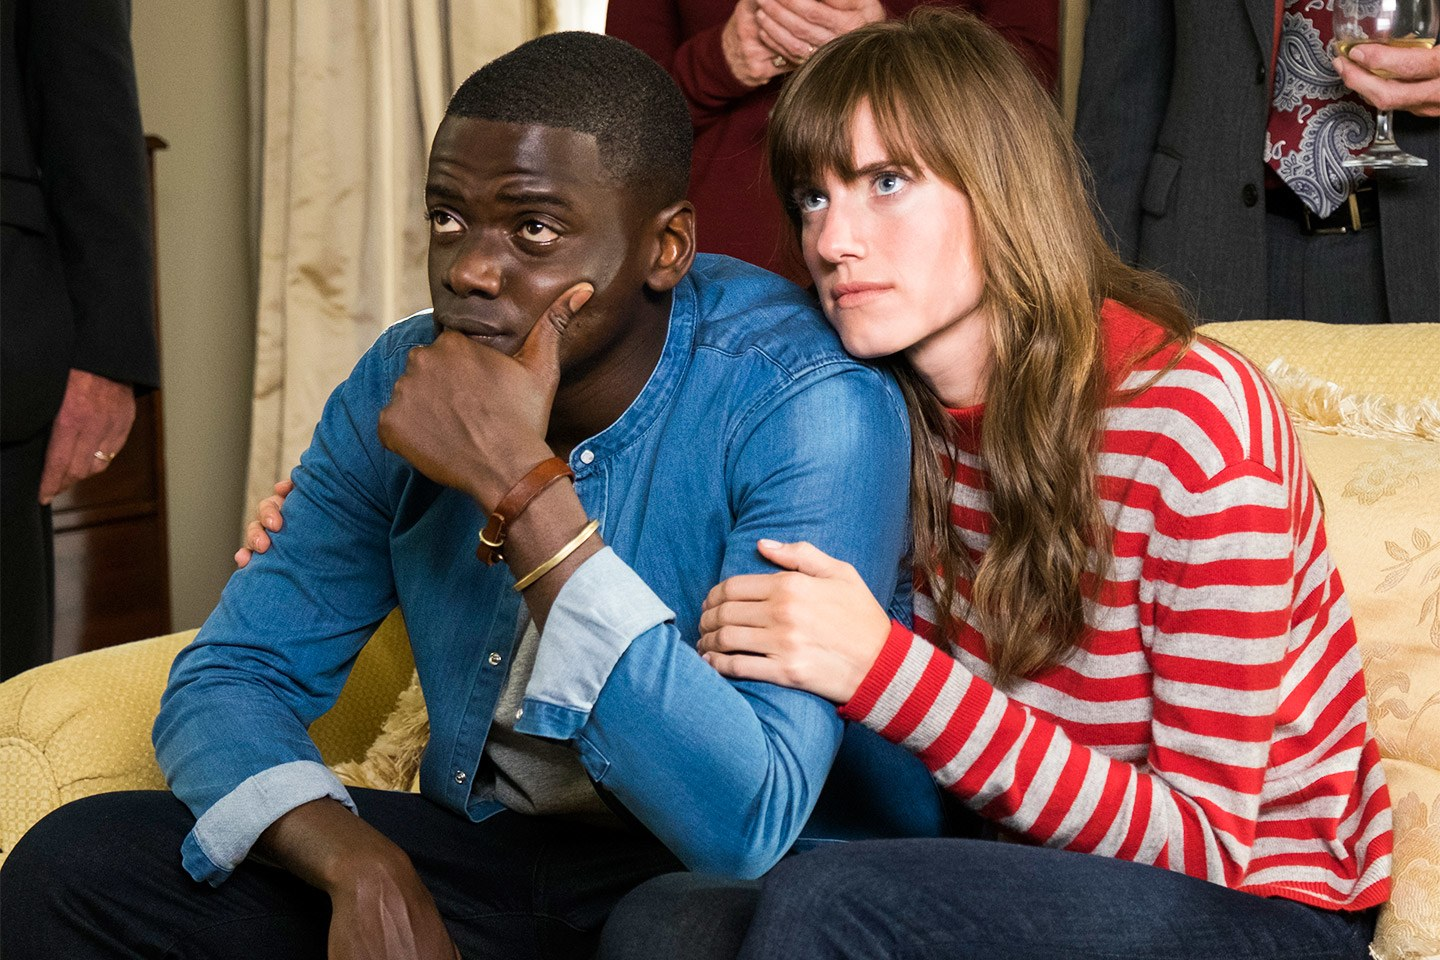 Daniel Kaluuya and Allison Williams in 'Get Out' (2017) [Source: Universal Pictures]